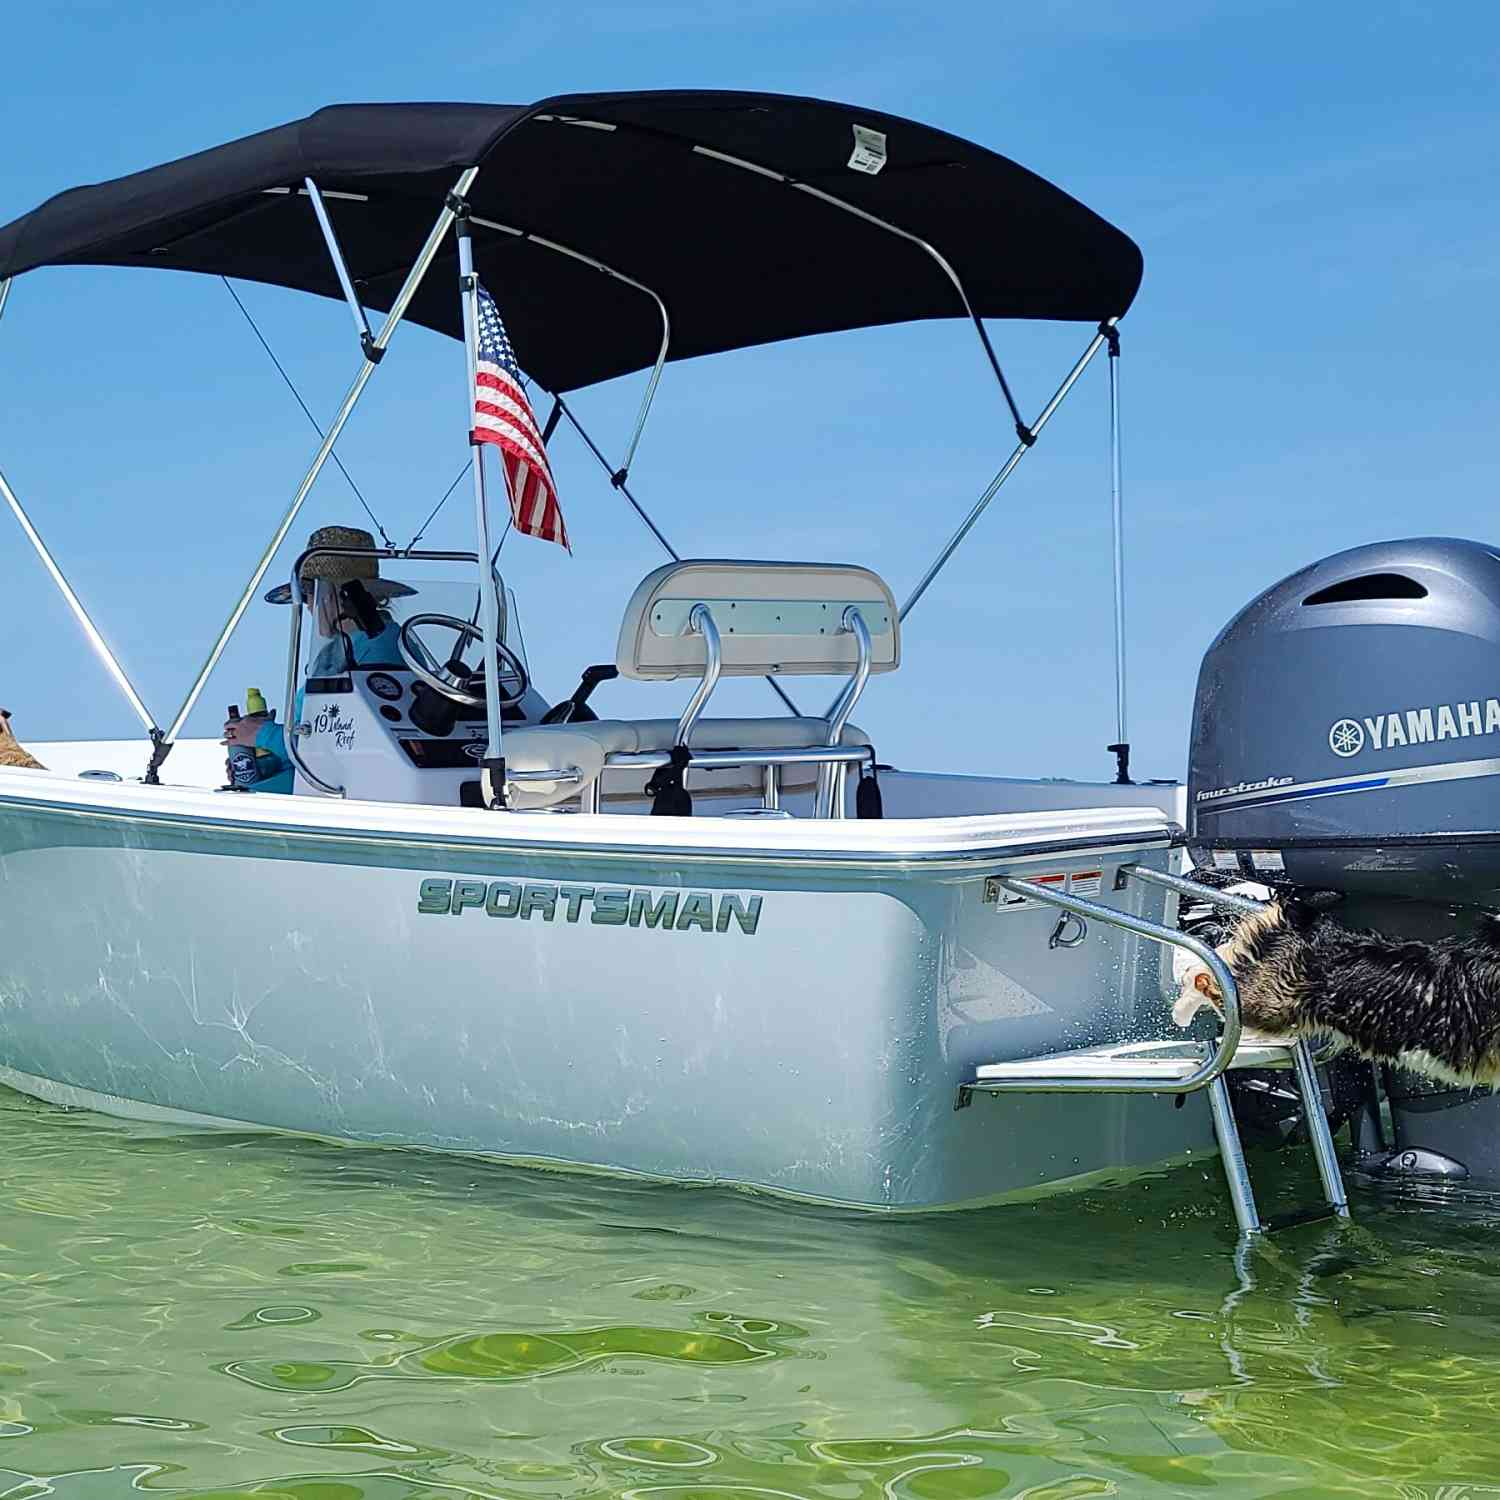 This is my 2018 Island Reef storm cloud grey with white bottom matched with a 115 yamy. We've g...